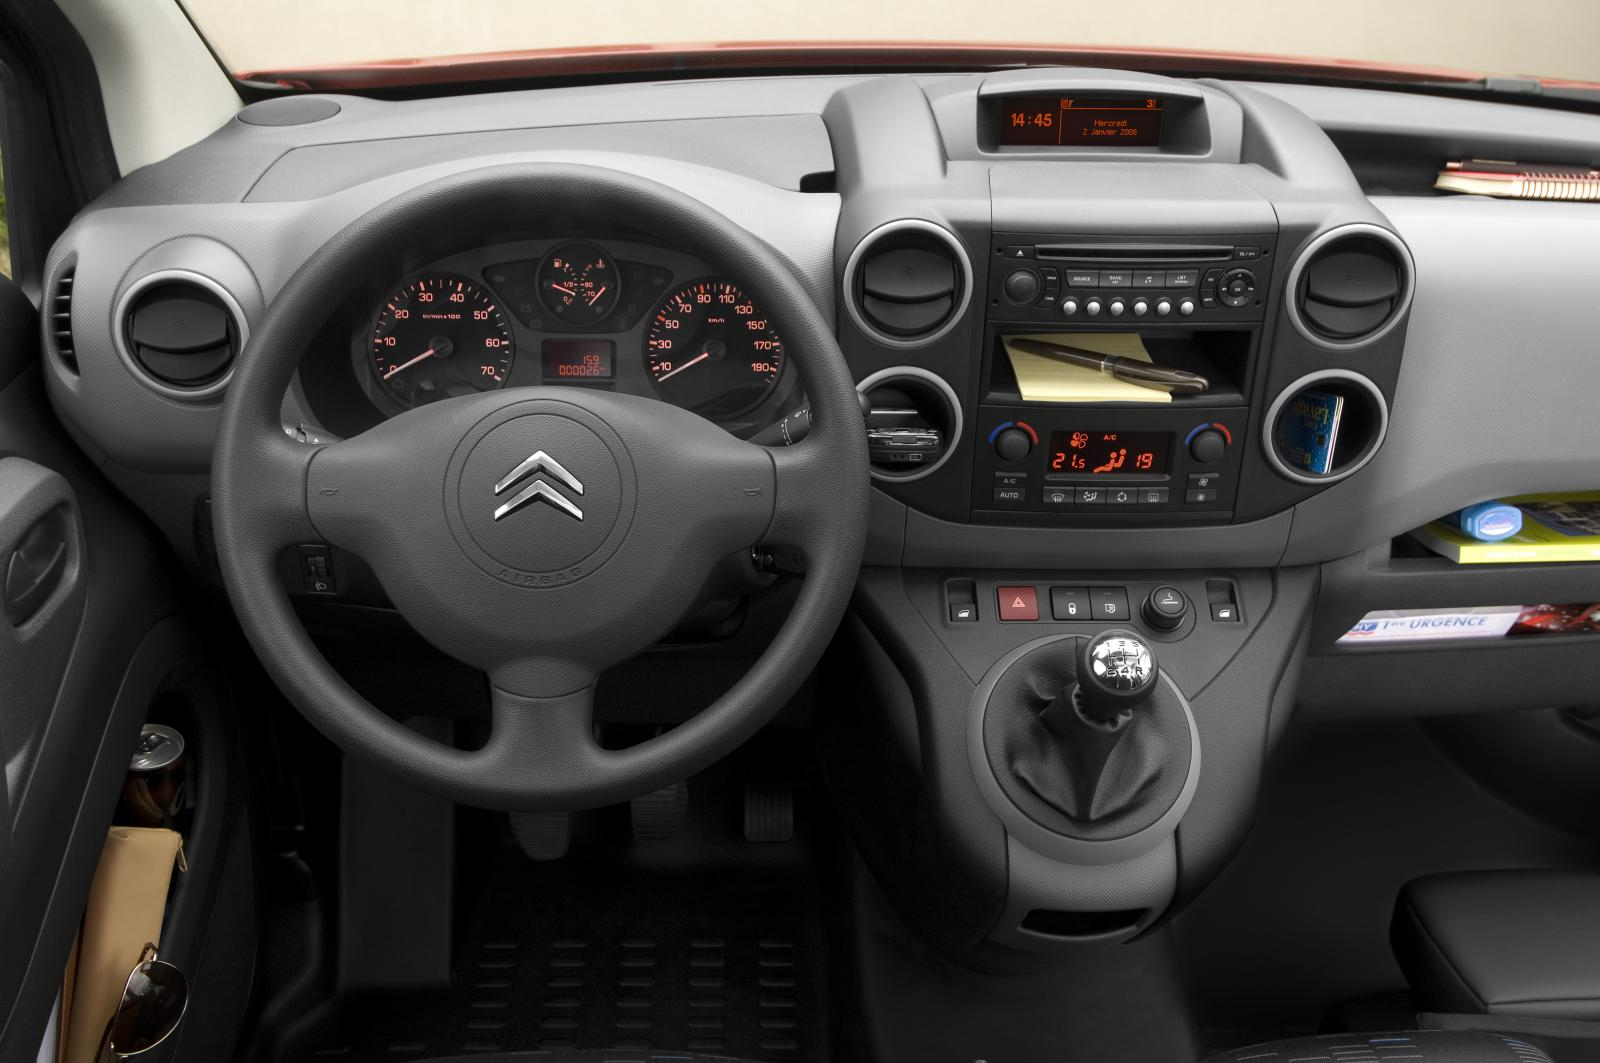 Berlingo 2008 steering wheel